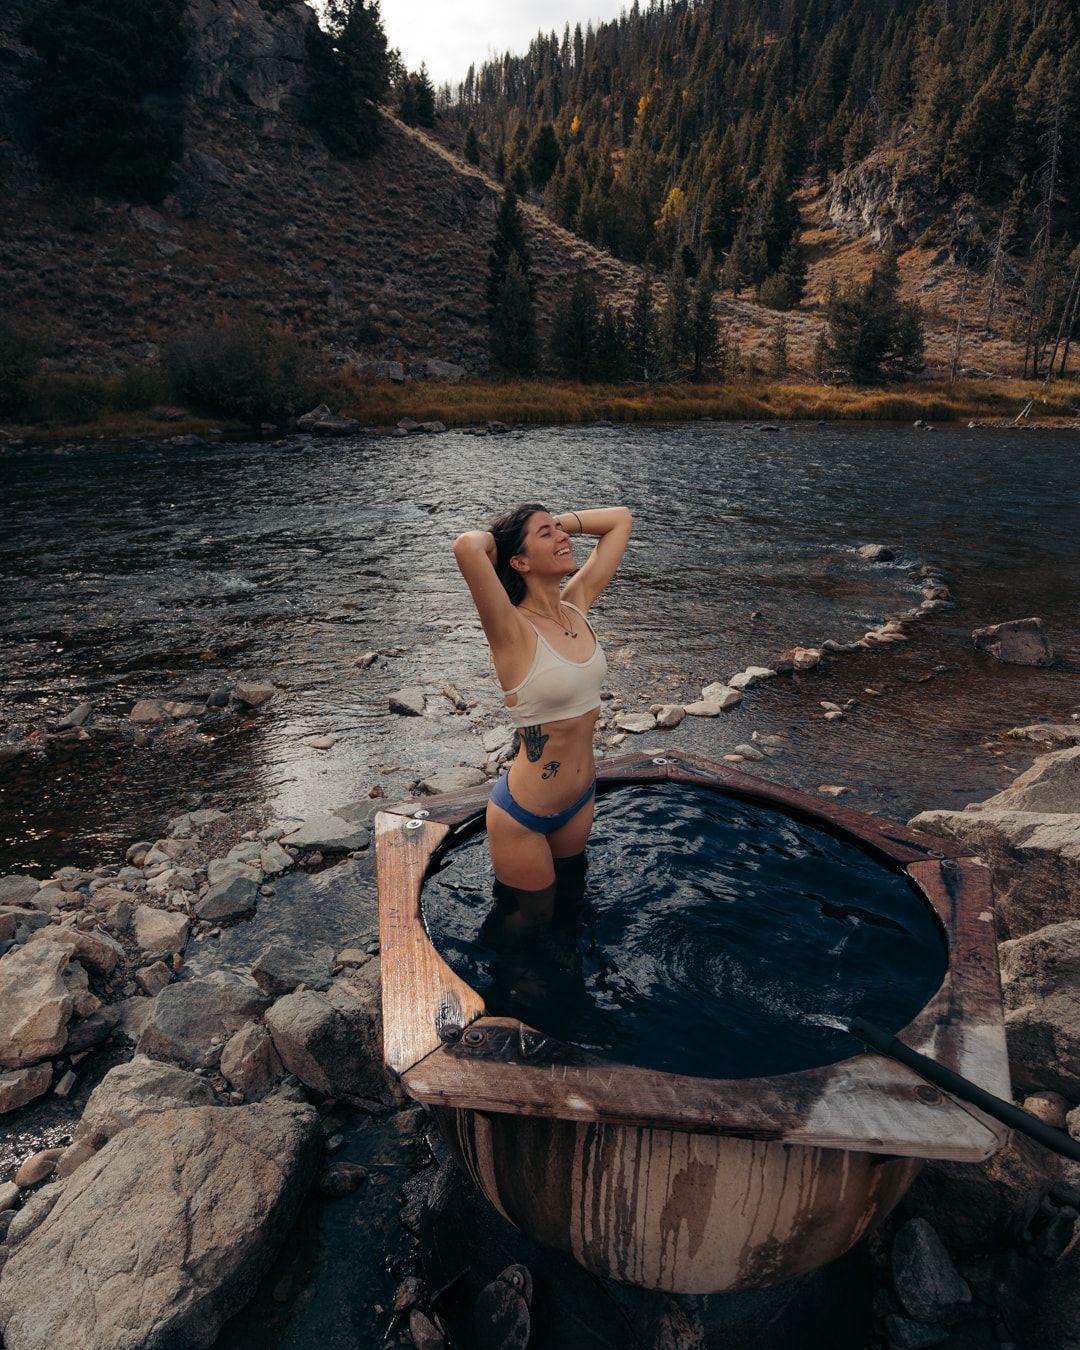 19 Of The Coziest, Warmest & Best Idaho Hot Spring